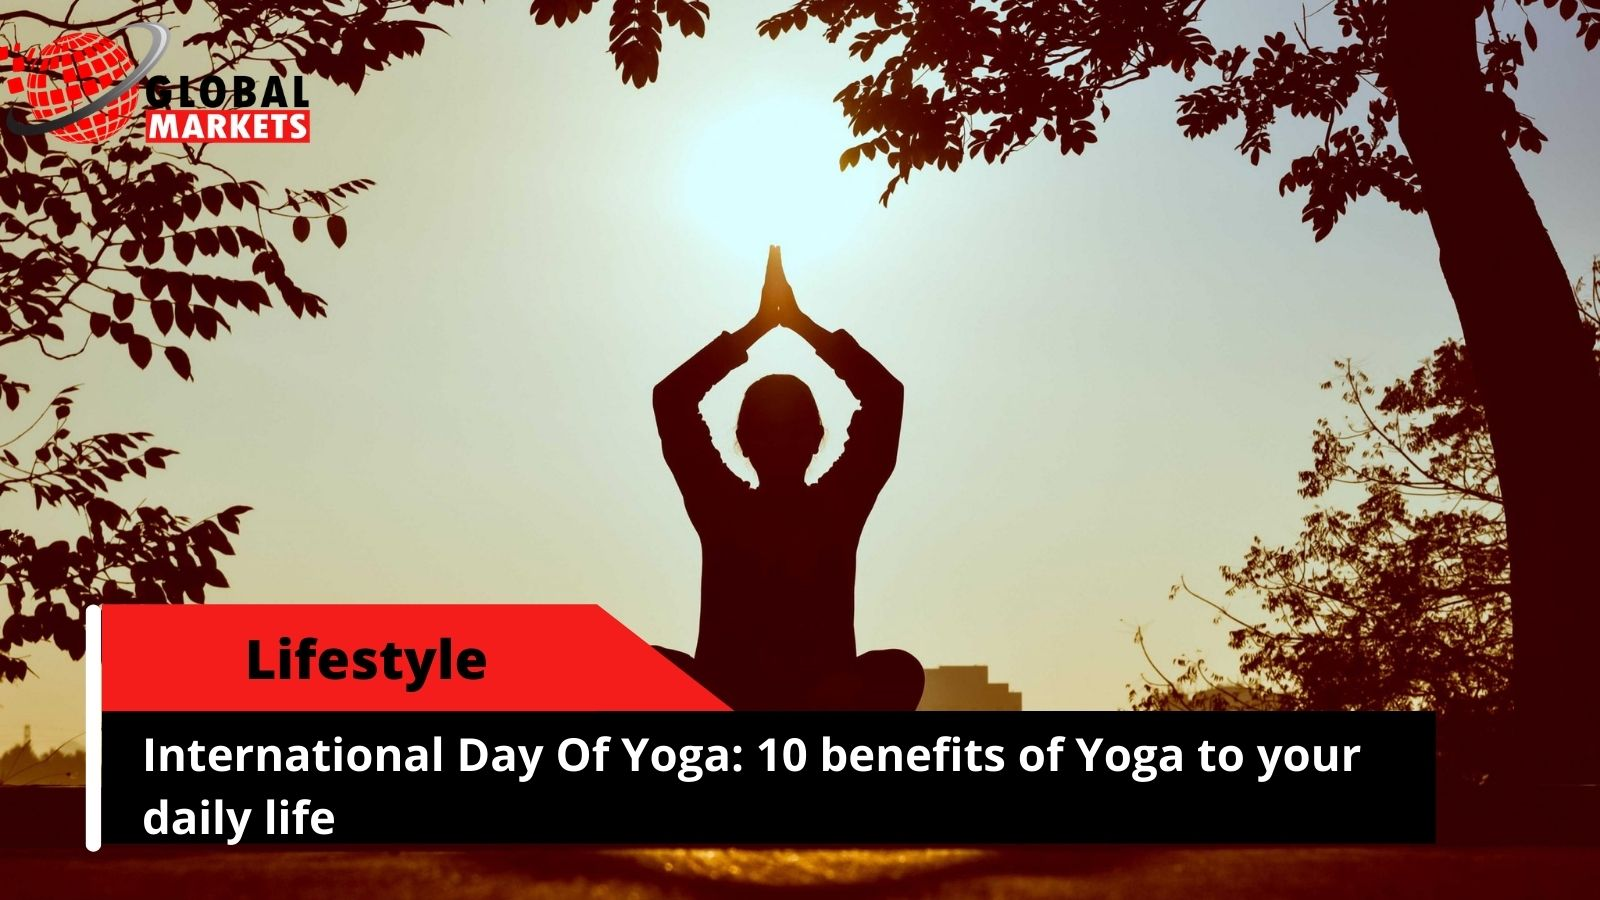 International Day Of Yoga: 10 Benefits of yoga to your daily life